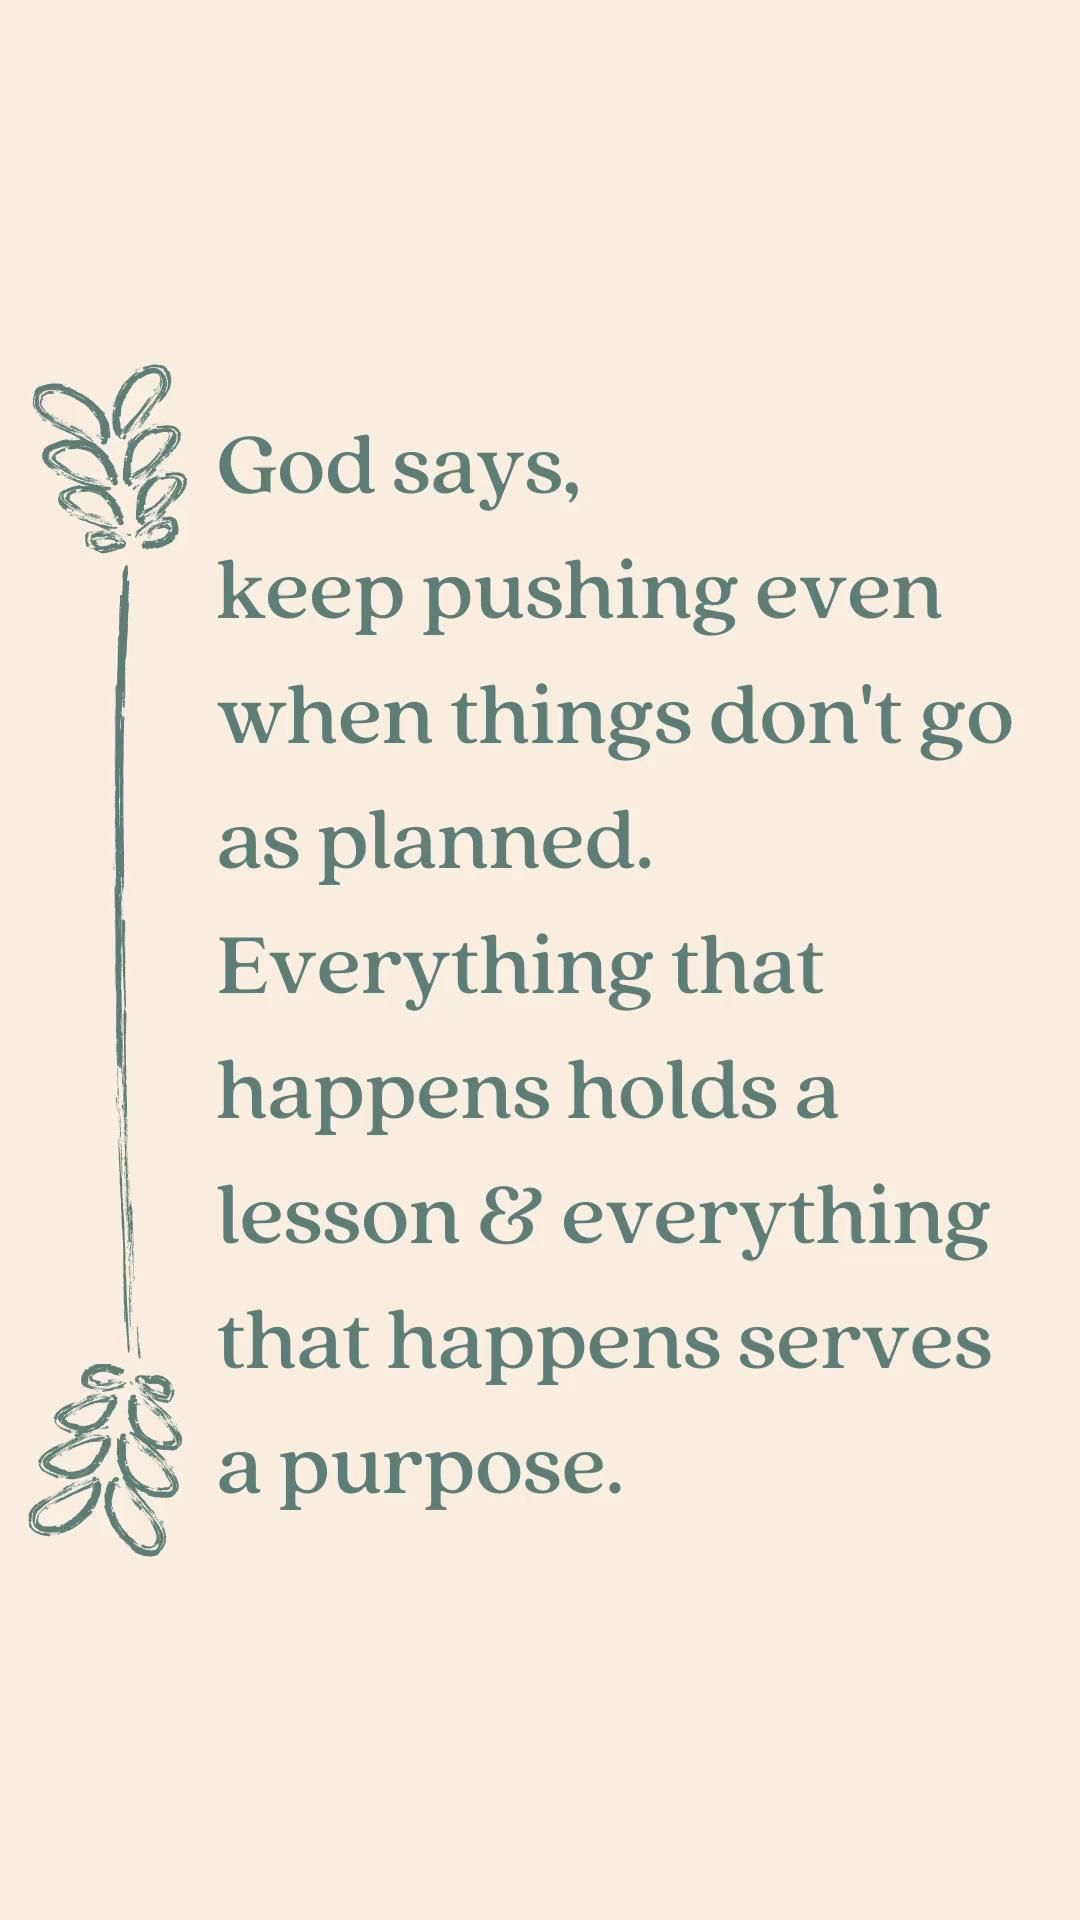 Bible Scripture Quotes for Anxiety. Bible Quotes for faith and hope. Trust Gods timing & Gods plan.